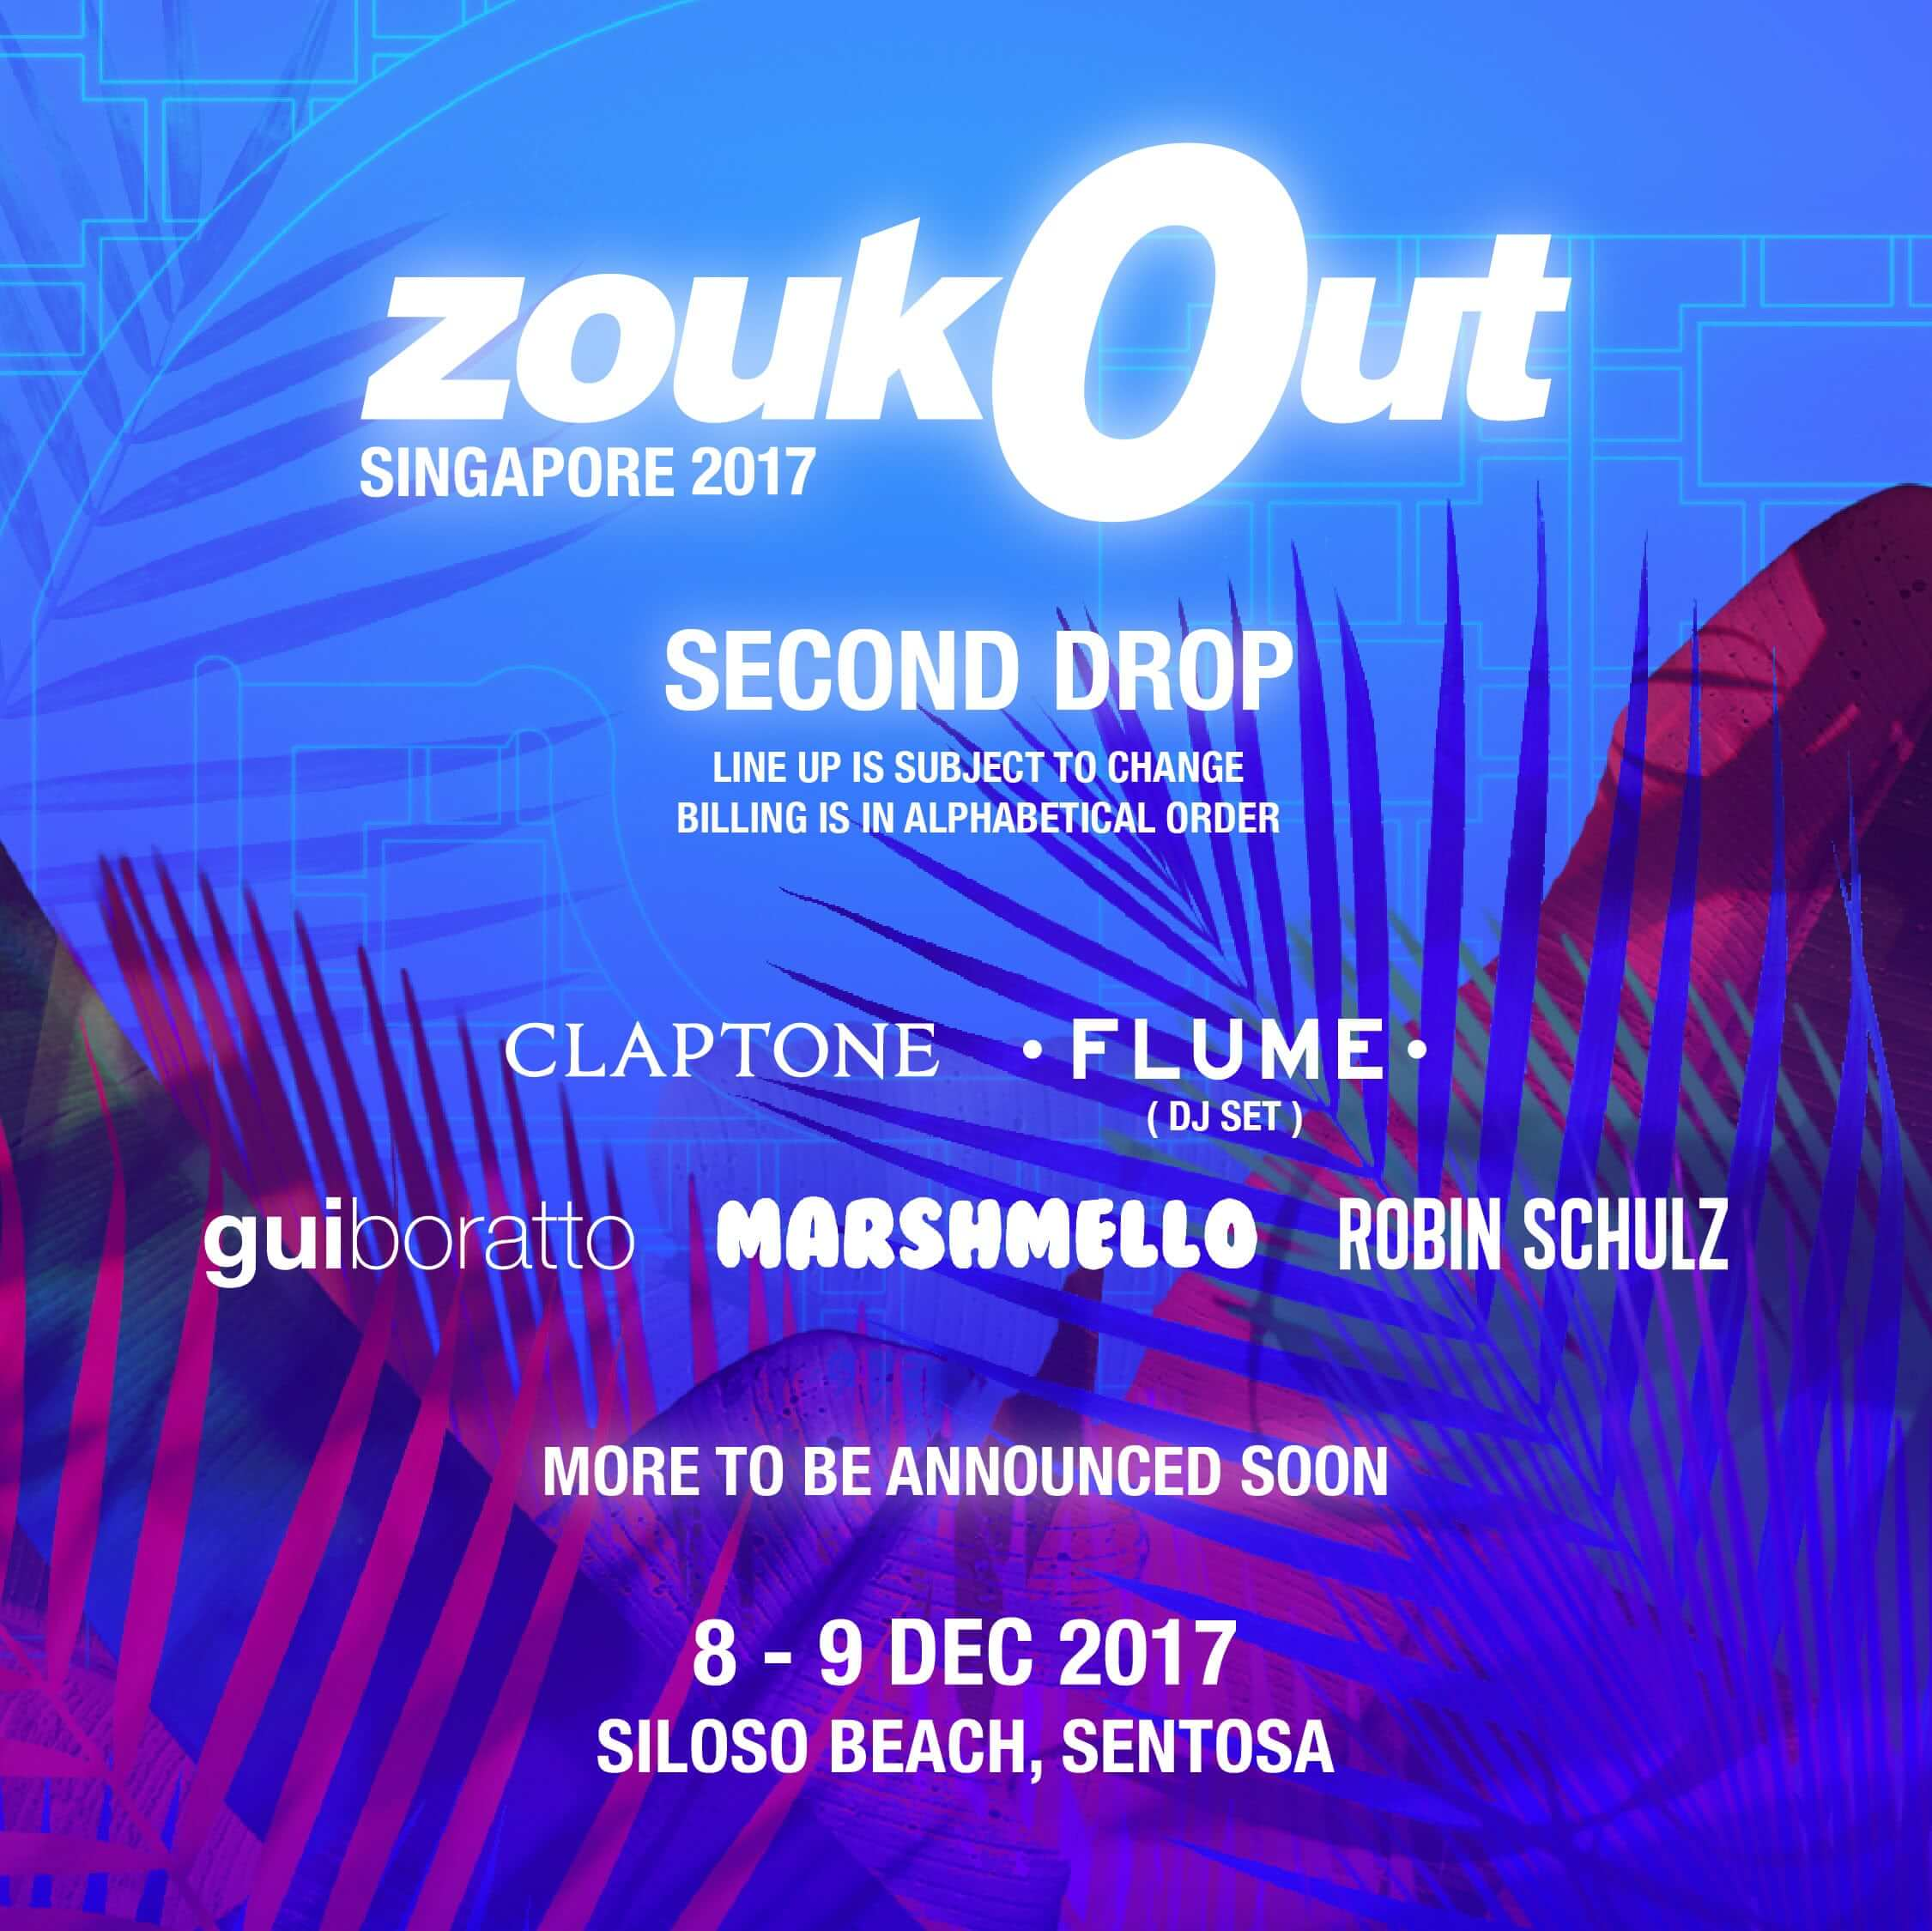 After announcing Flume and Marshmello as the first two headliners for ZoukOut 2017 in Singapore, the festival has rounded out the full phase one lineup.